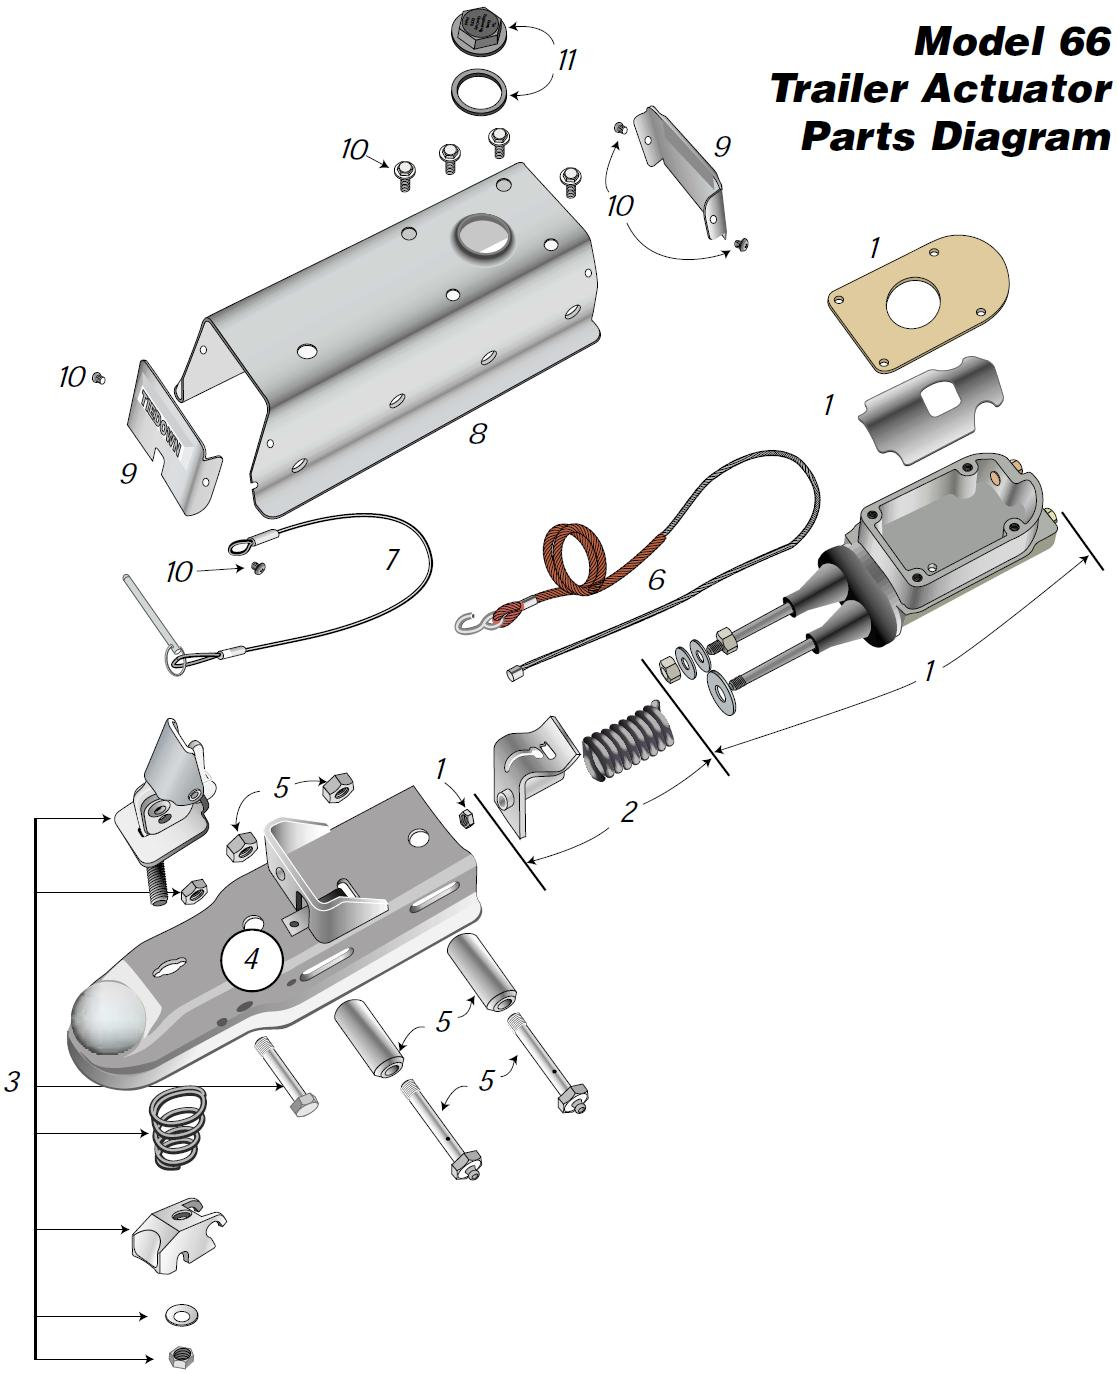 Wiring Diagram For Tandem Axle Trailer With Brakes